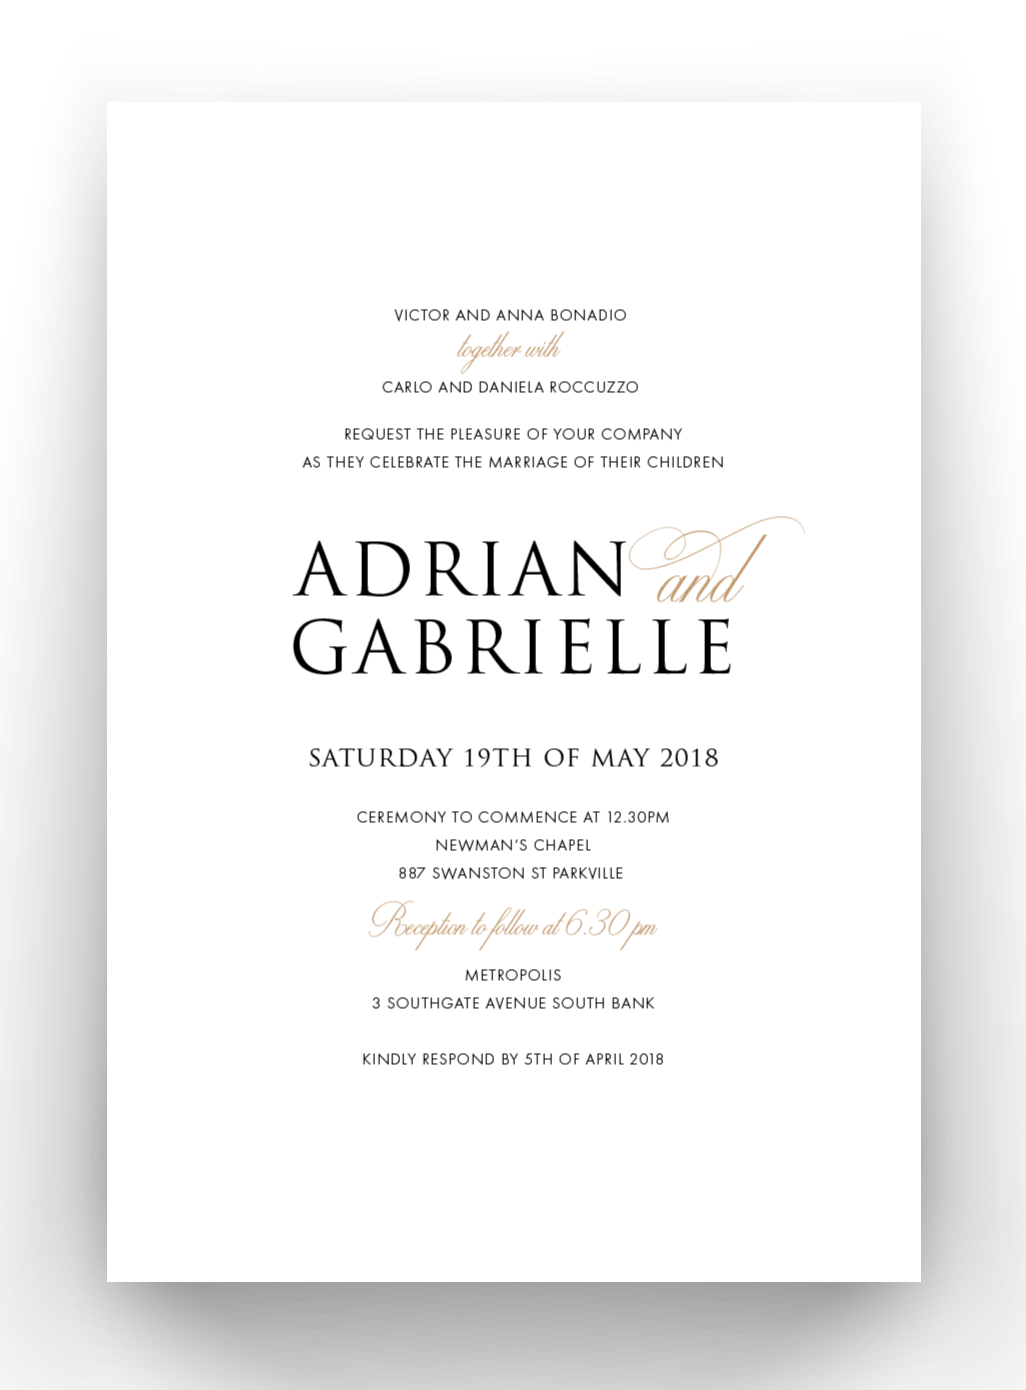 'Gabrielle' Wedding Invitations